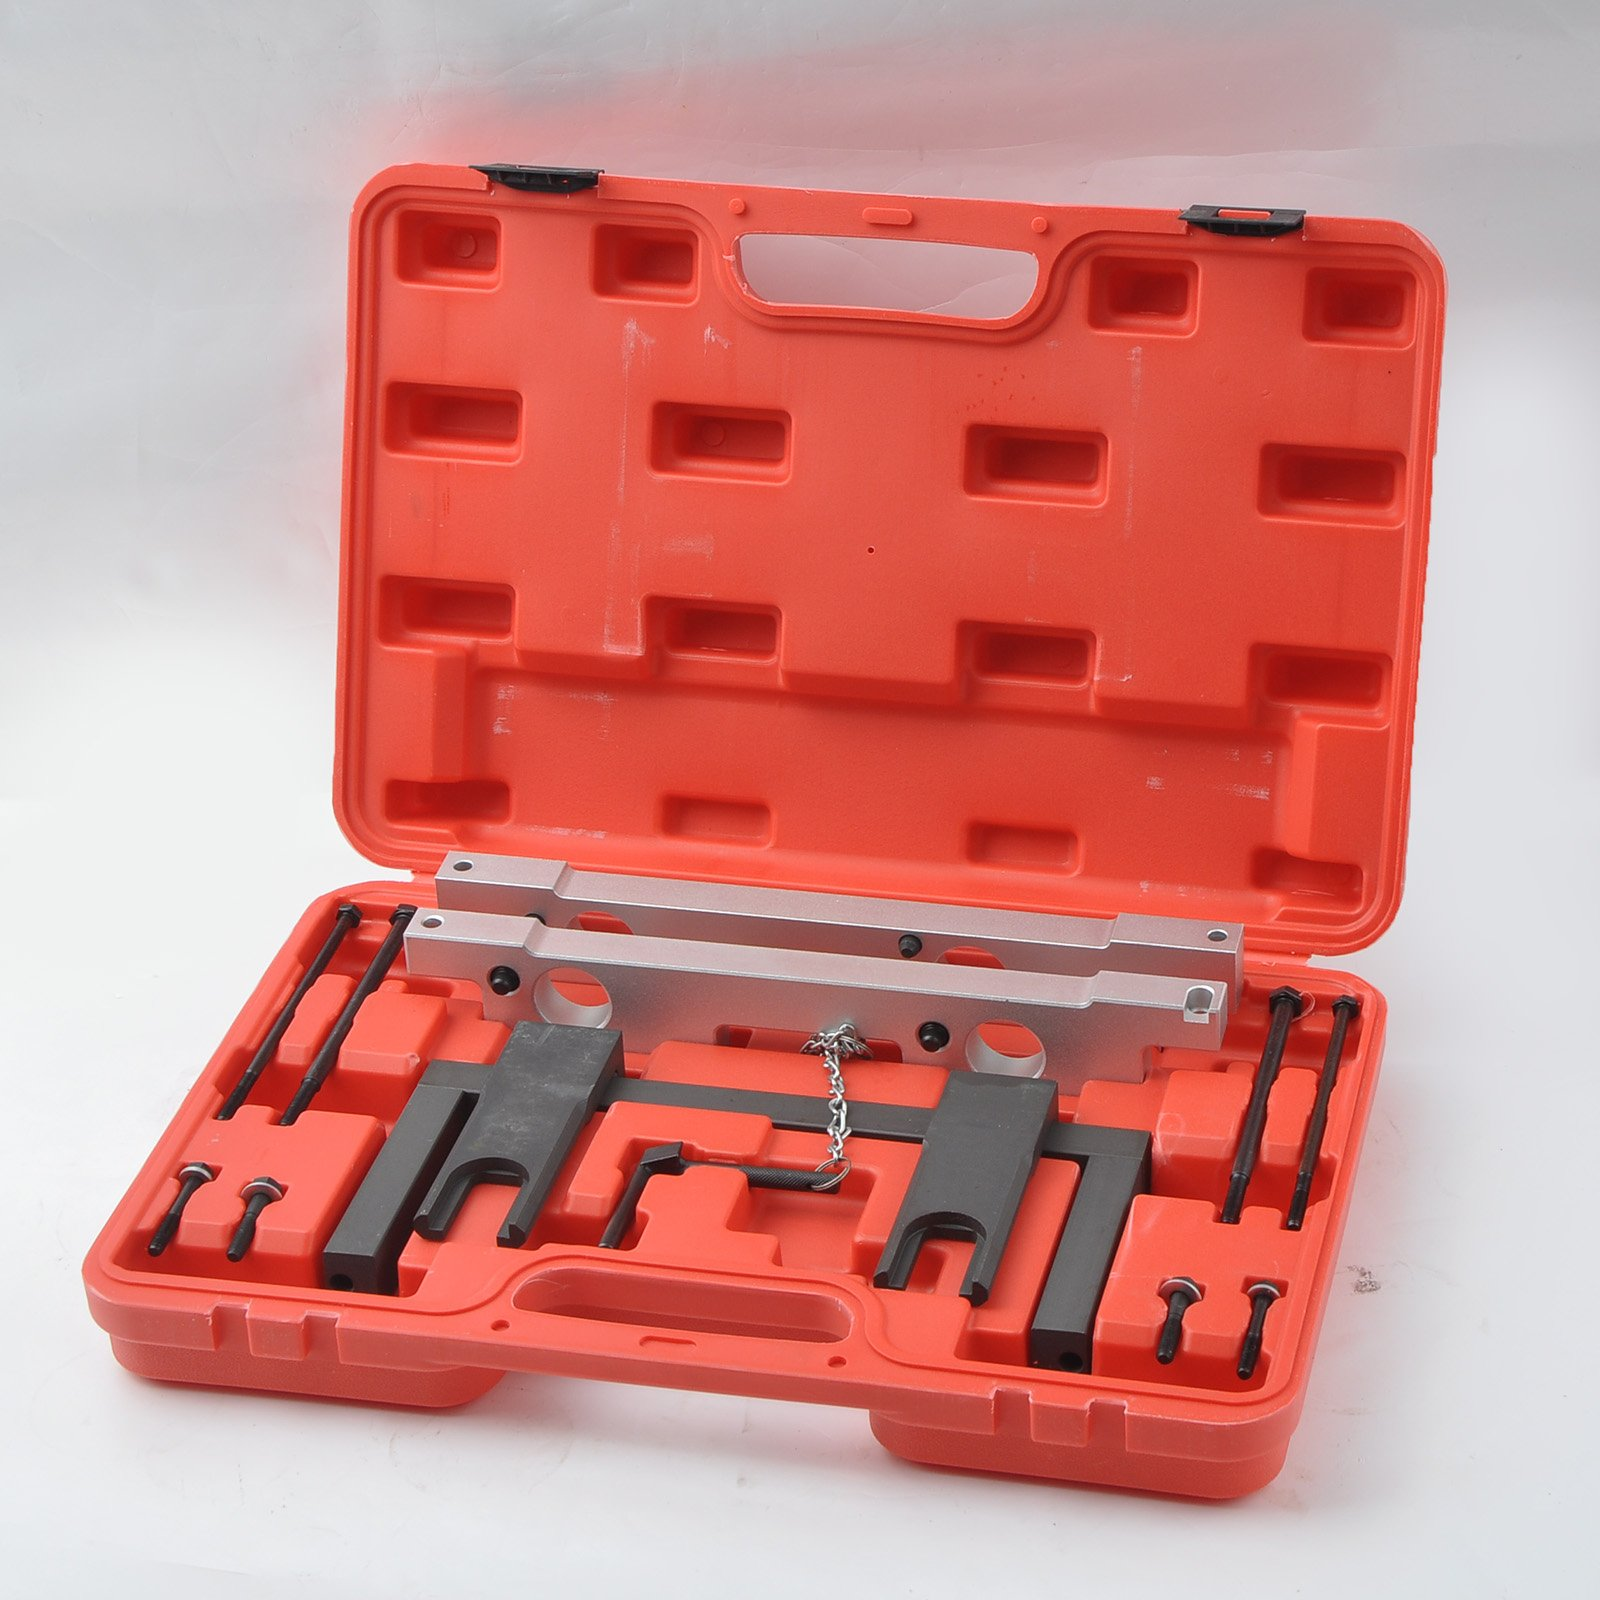 BMW N51 N52 N53 N54 Engine Camshaft Alignment Locking Timing Tool Kit